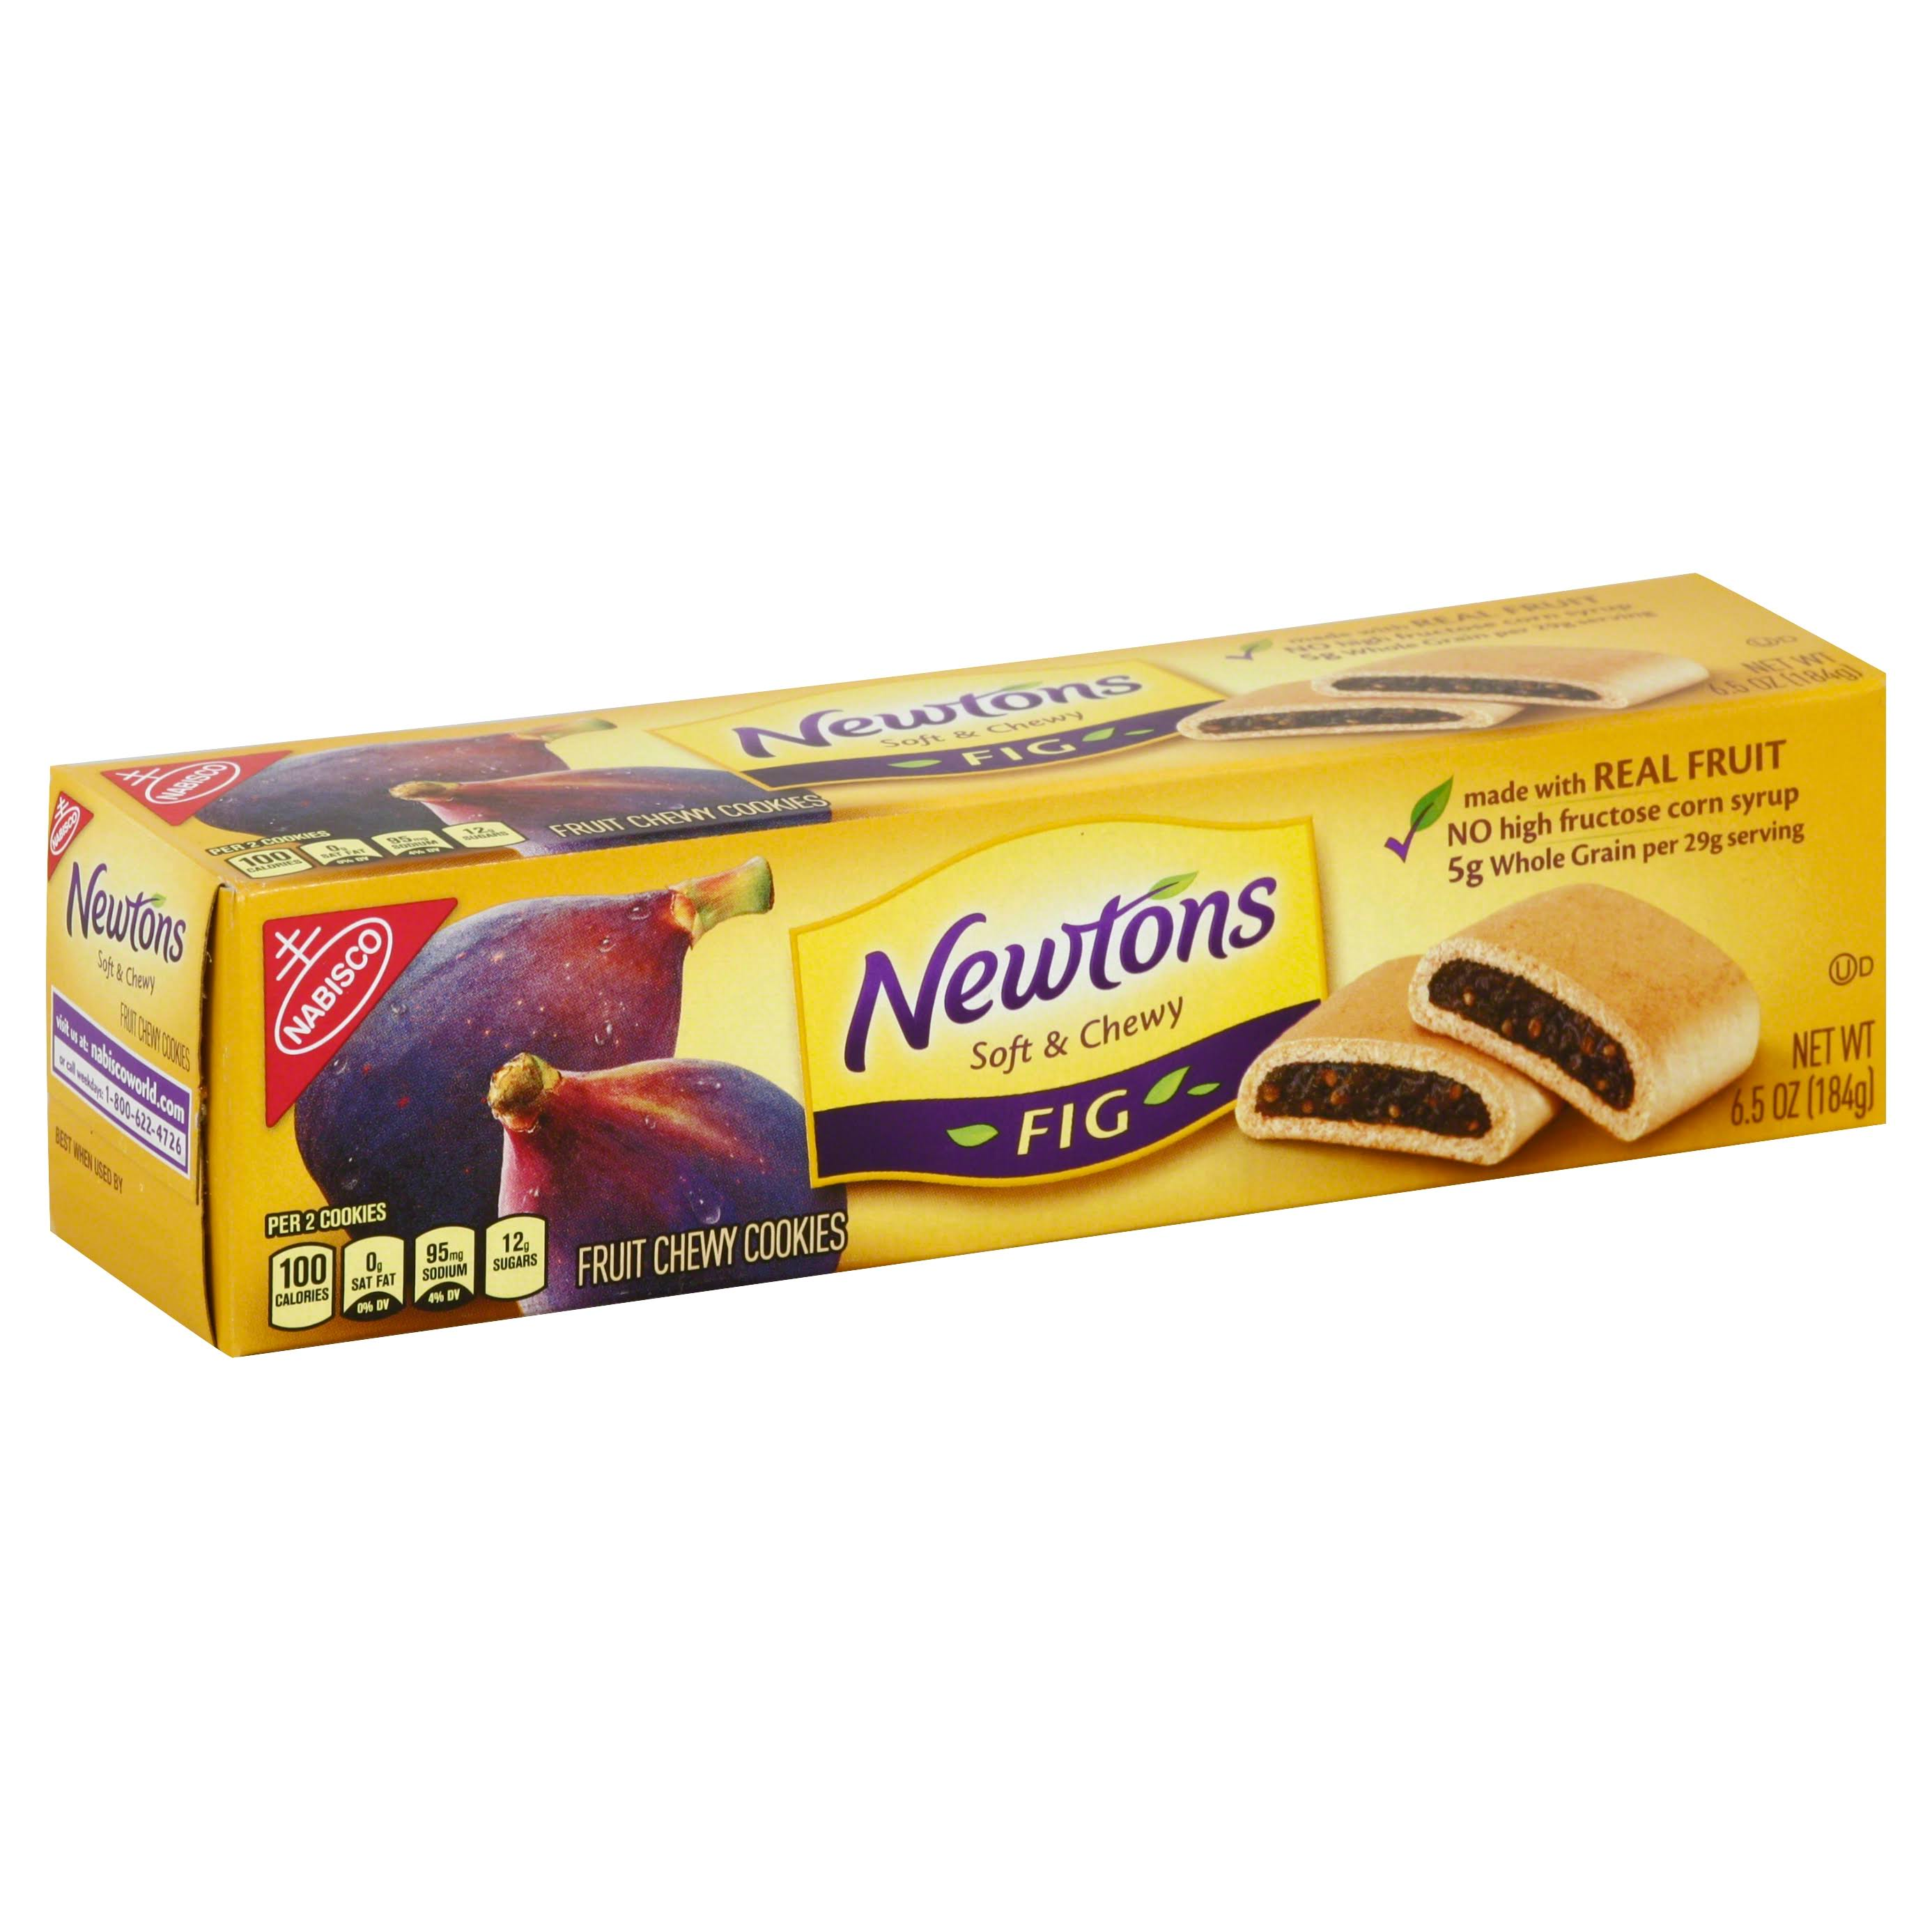 Nabisco Newtons Fig Fruit Chewy Cookies - 6.5oz